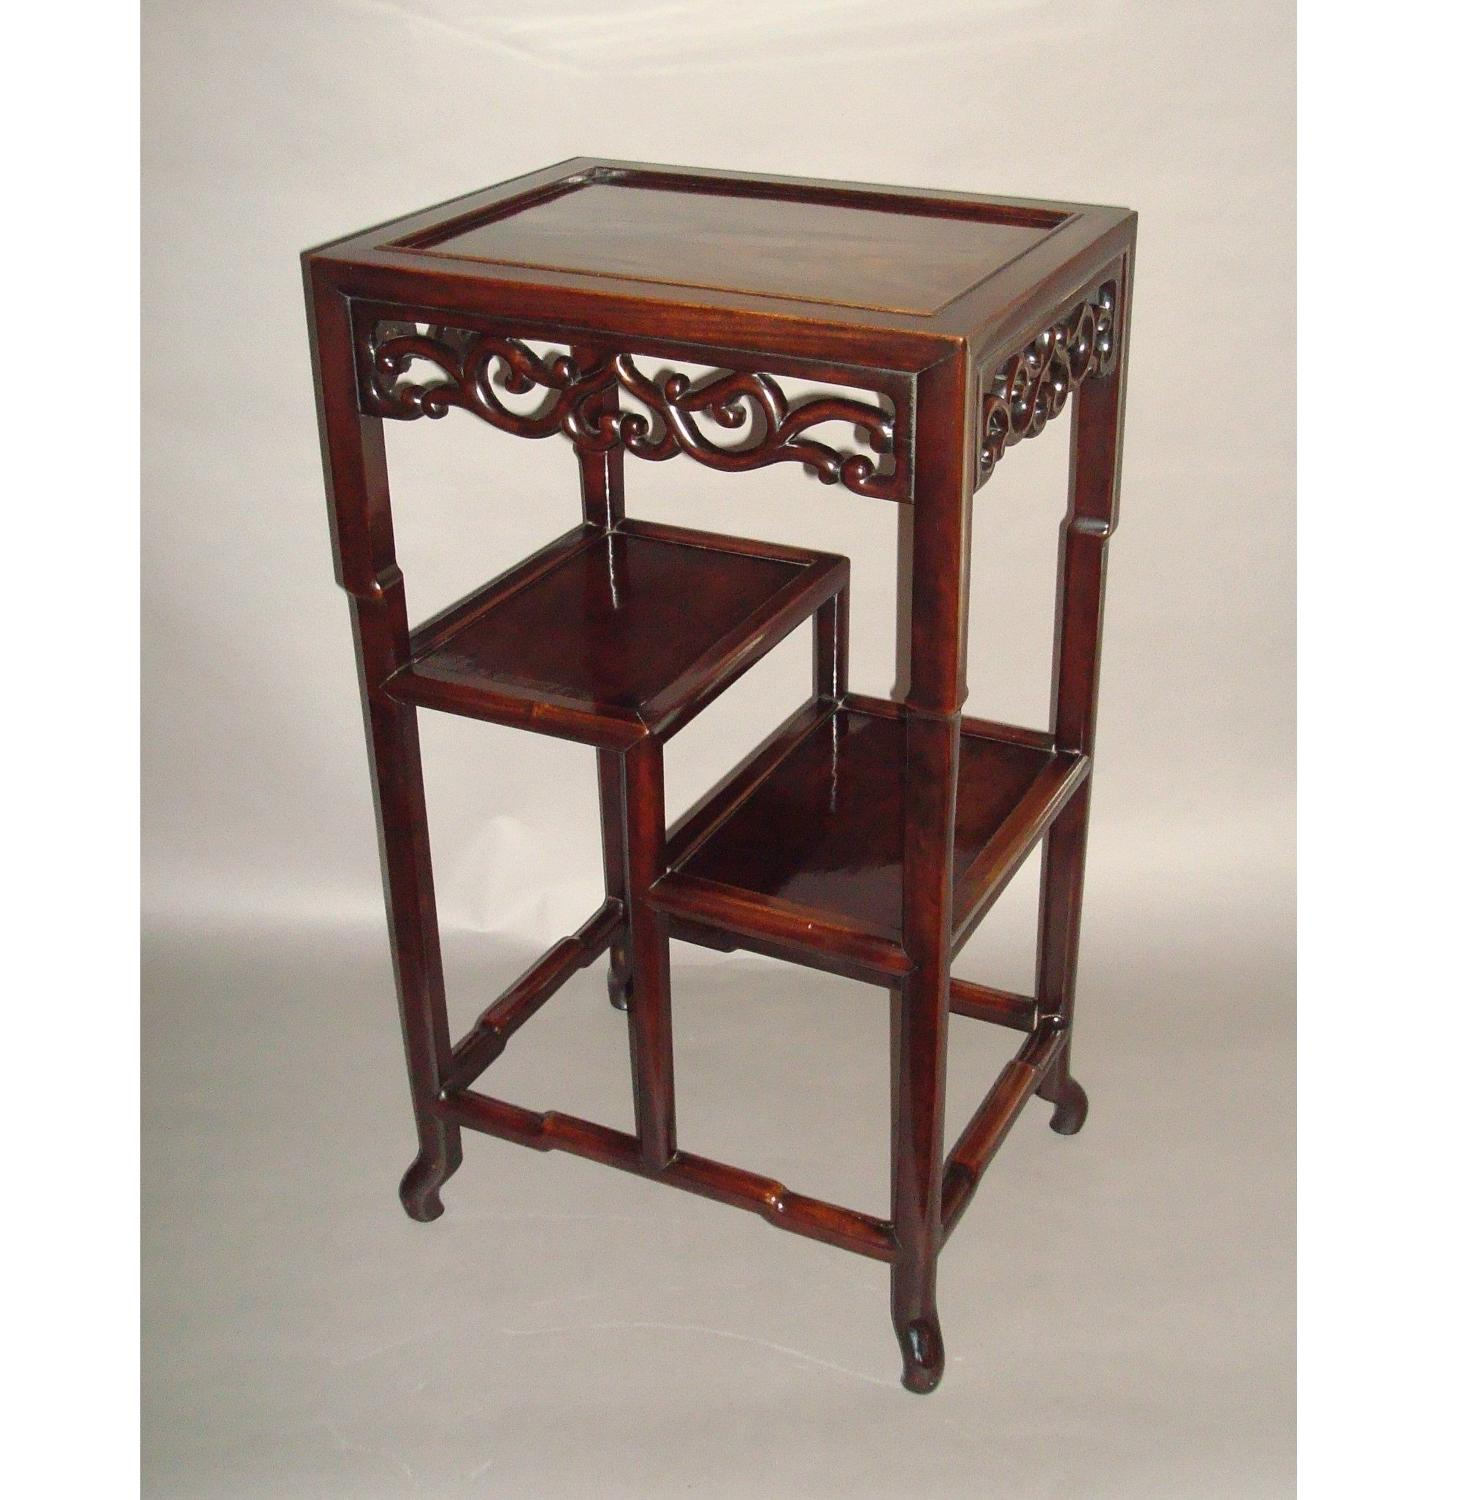 19th century Chinese Hongmu stand/table